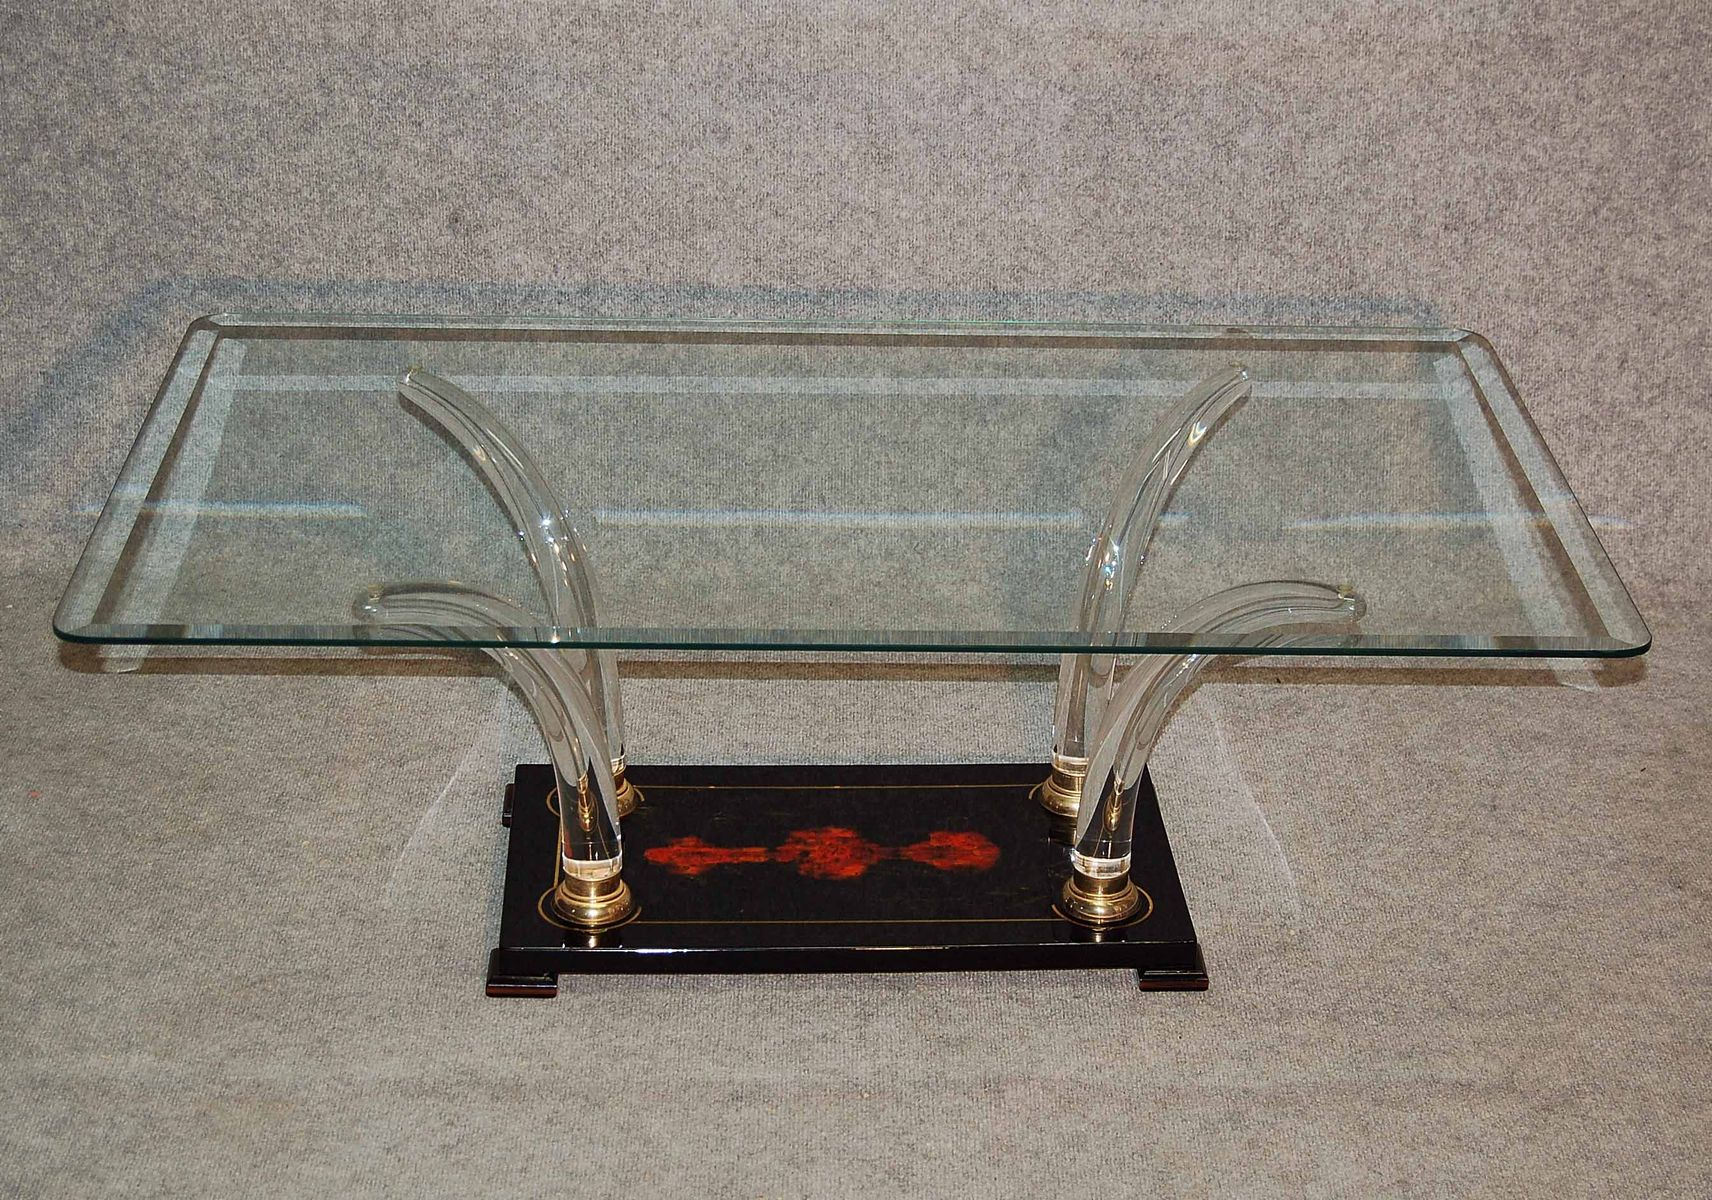 Italian Lacquered Wood and Glass Coffee Table 1970s for sale at